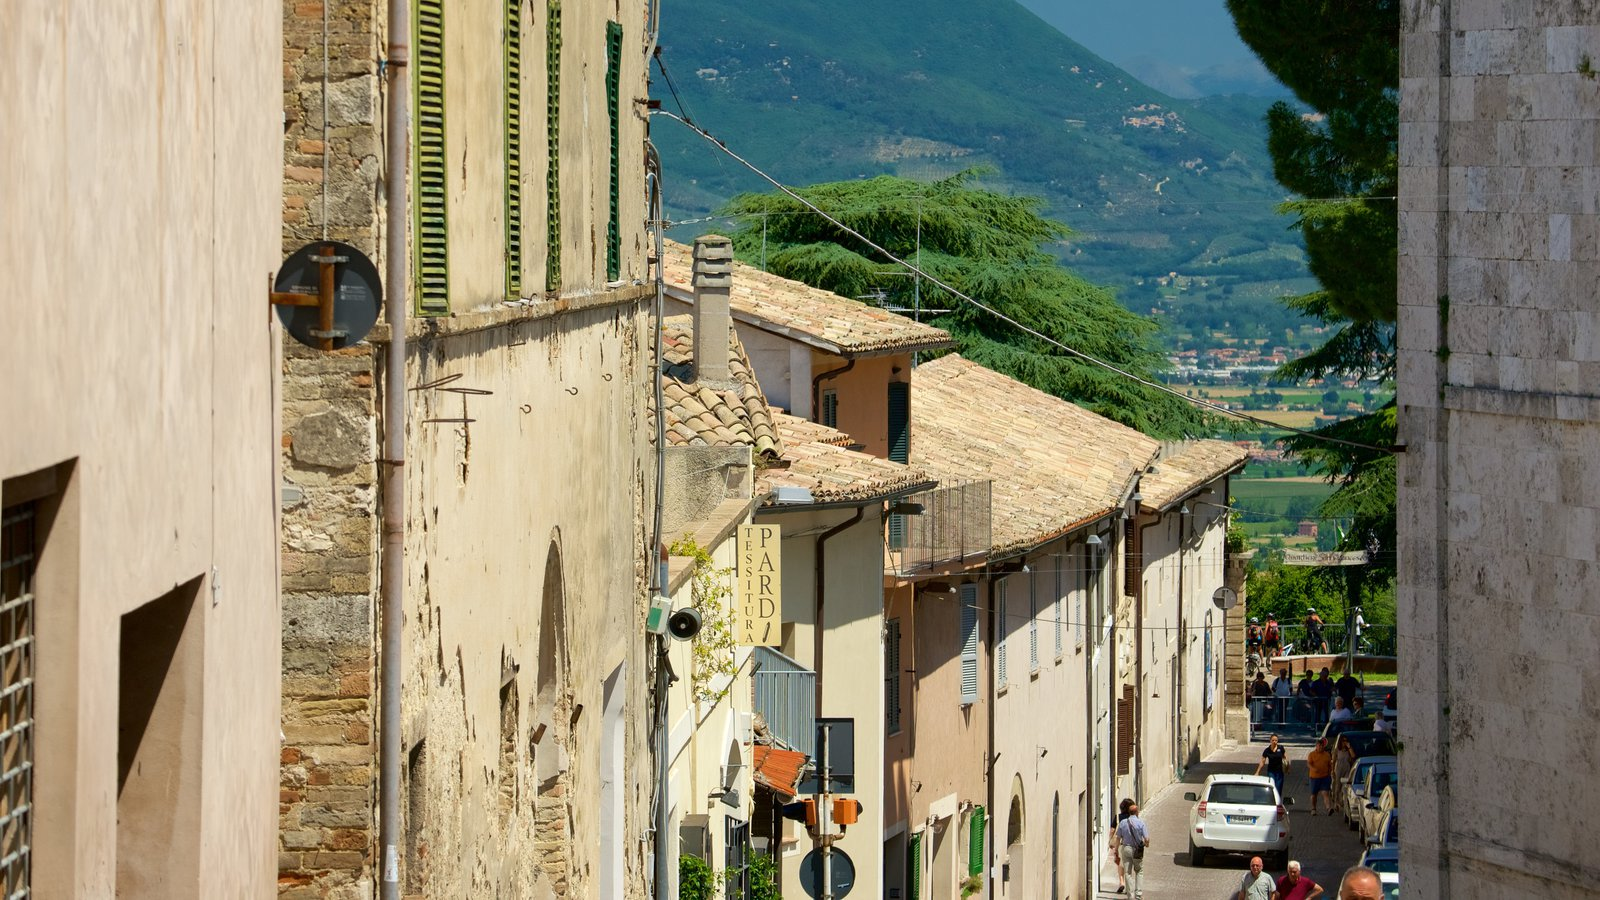 Montefalco featuring street scenes and heritage architecture